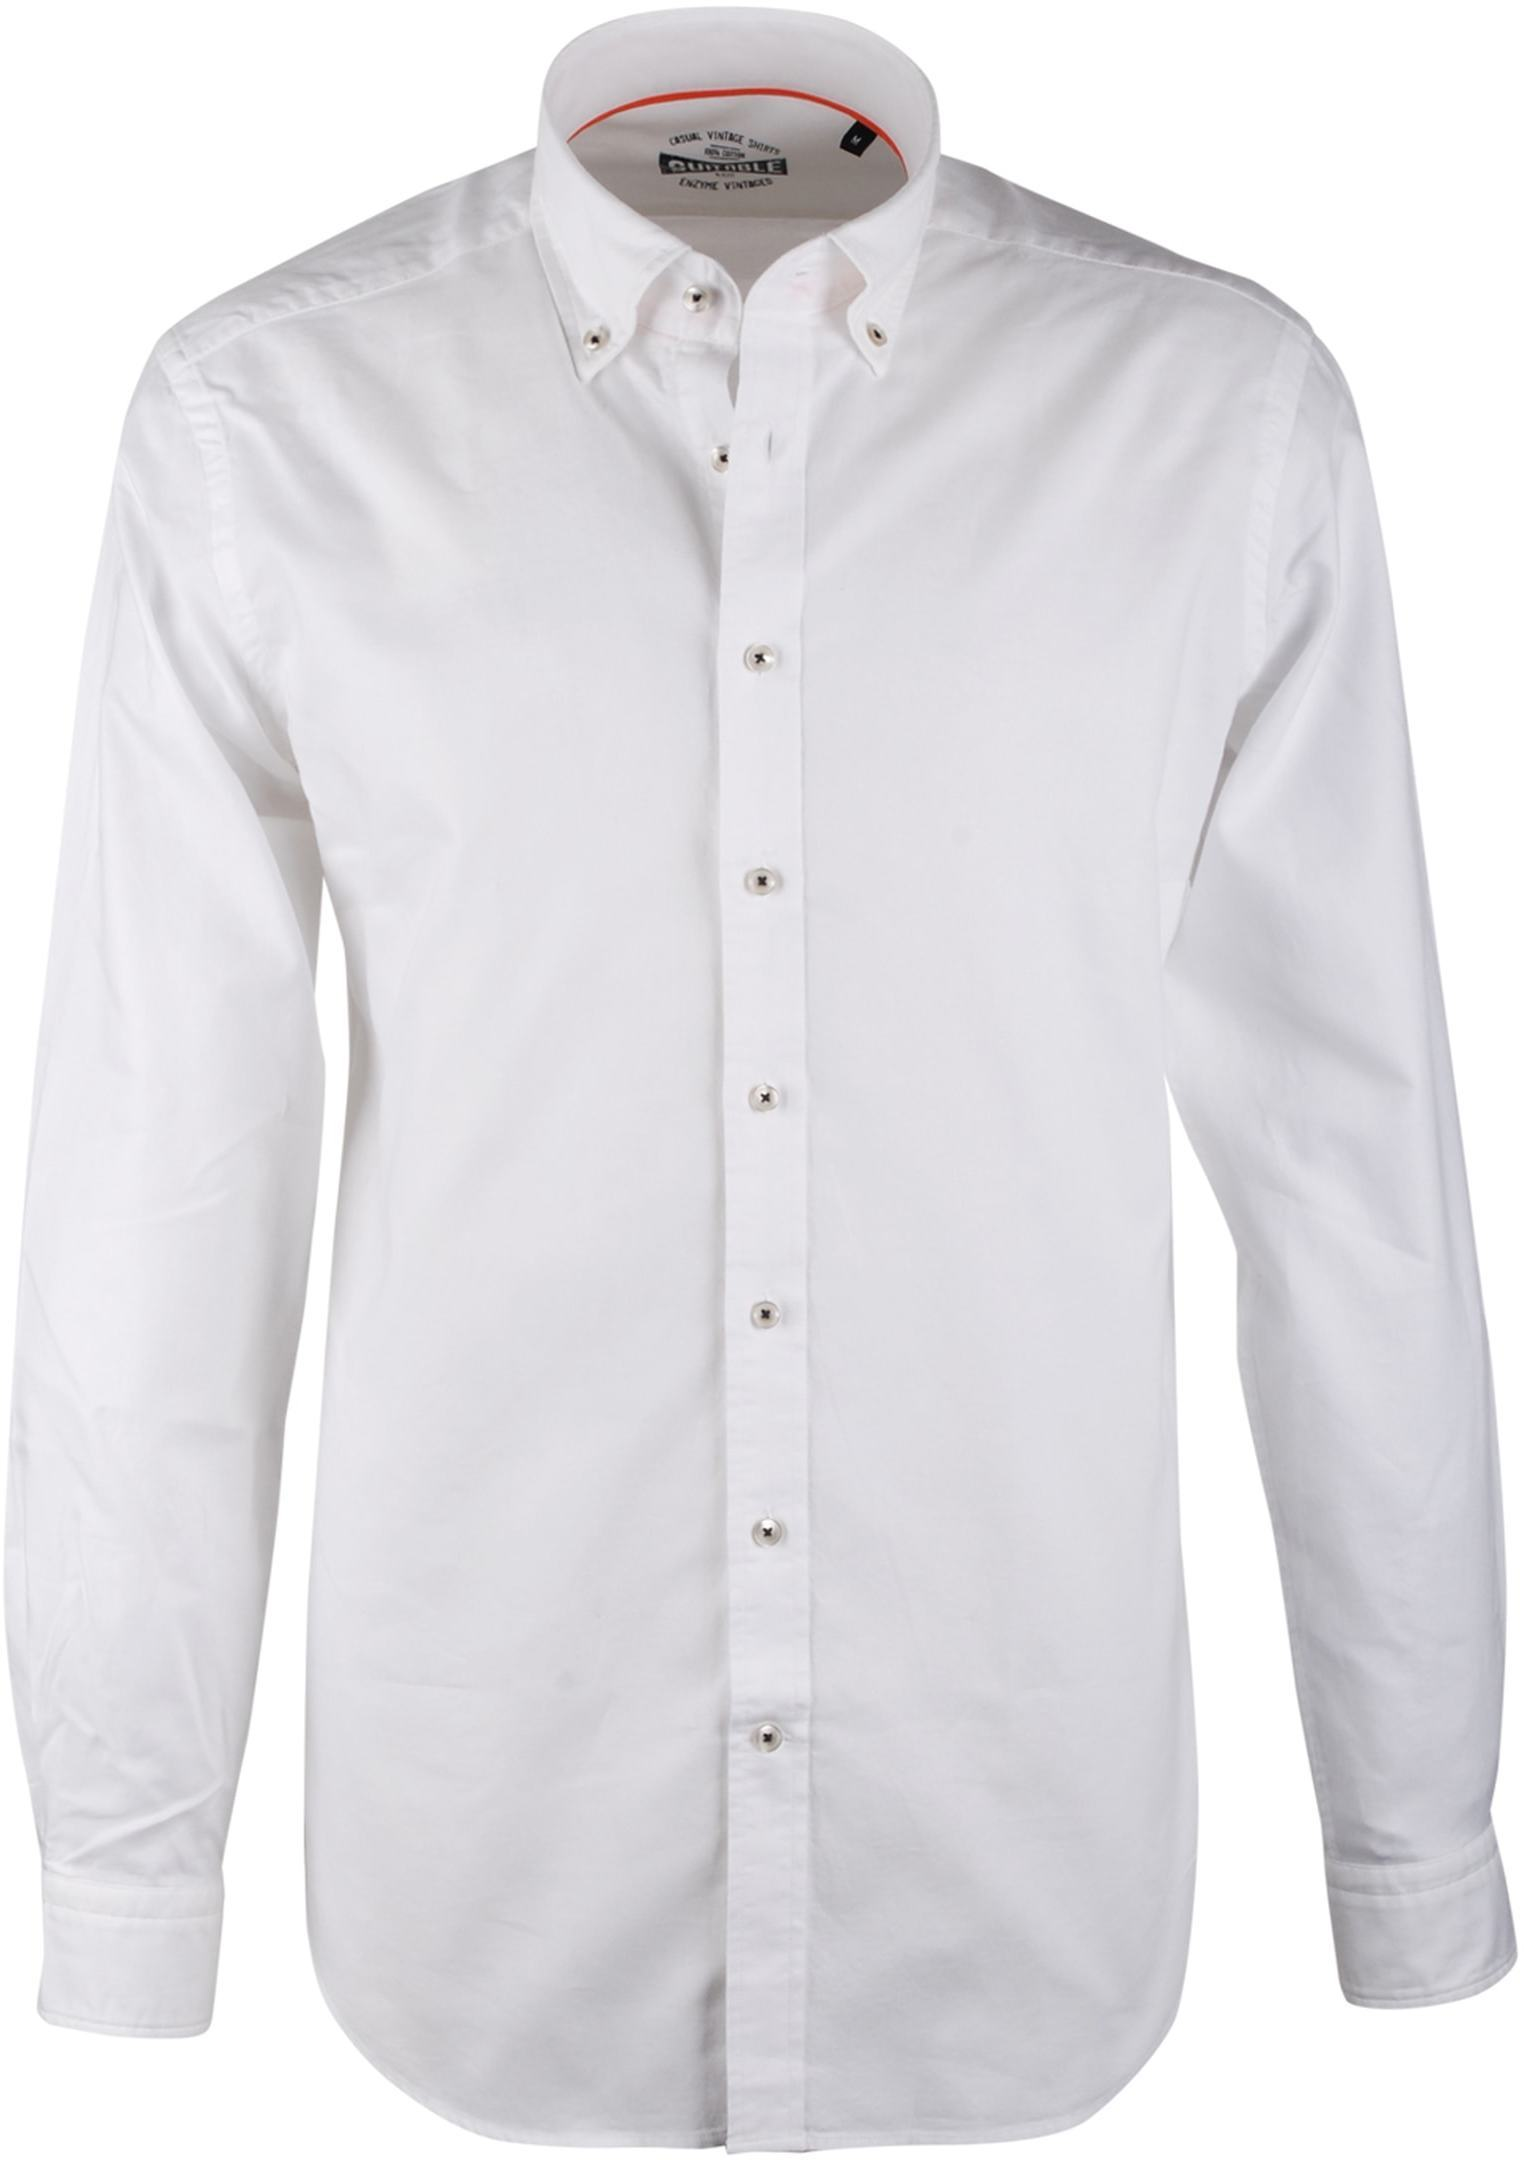 Casual Wit Overhemd.Wit Casual Overhemd Suitable 527898 10 Oxford White